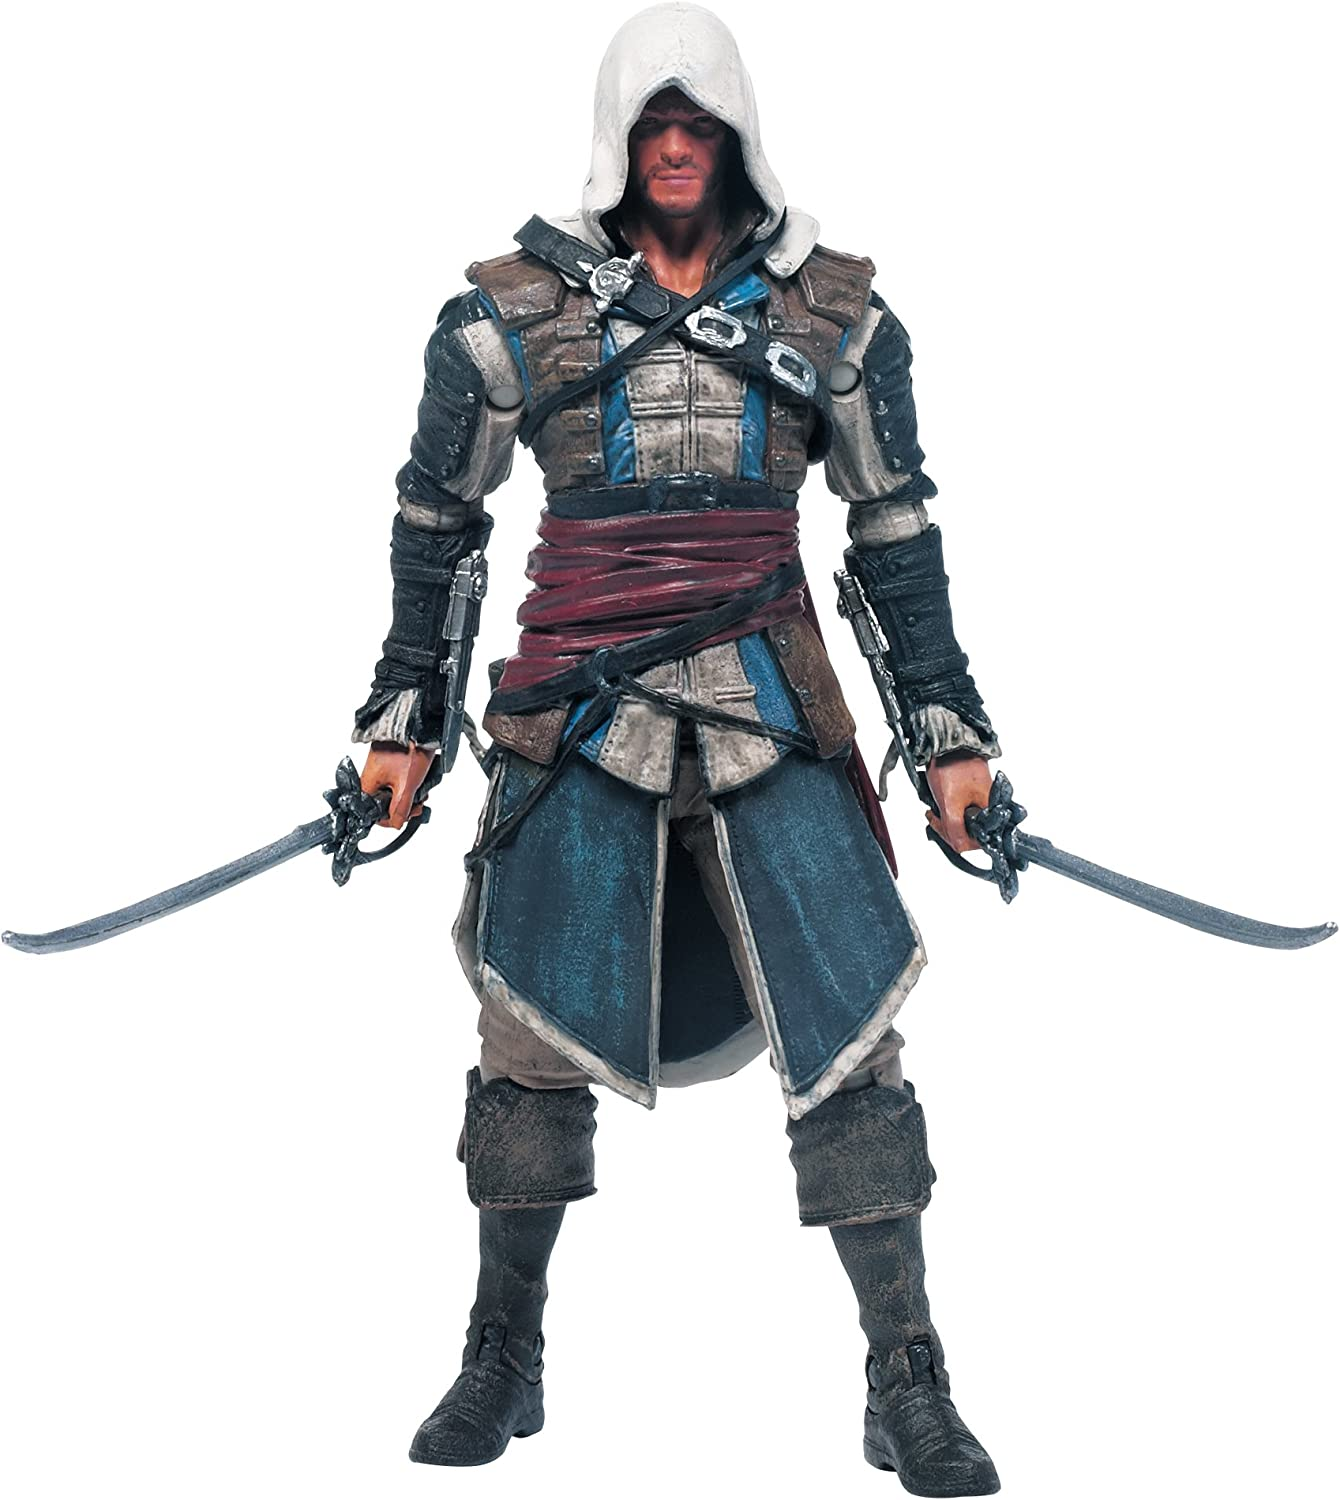 Mcfarlane Assassins Creed Edward Kenway Action Figure Xbox 360